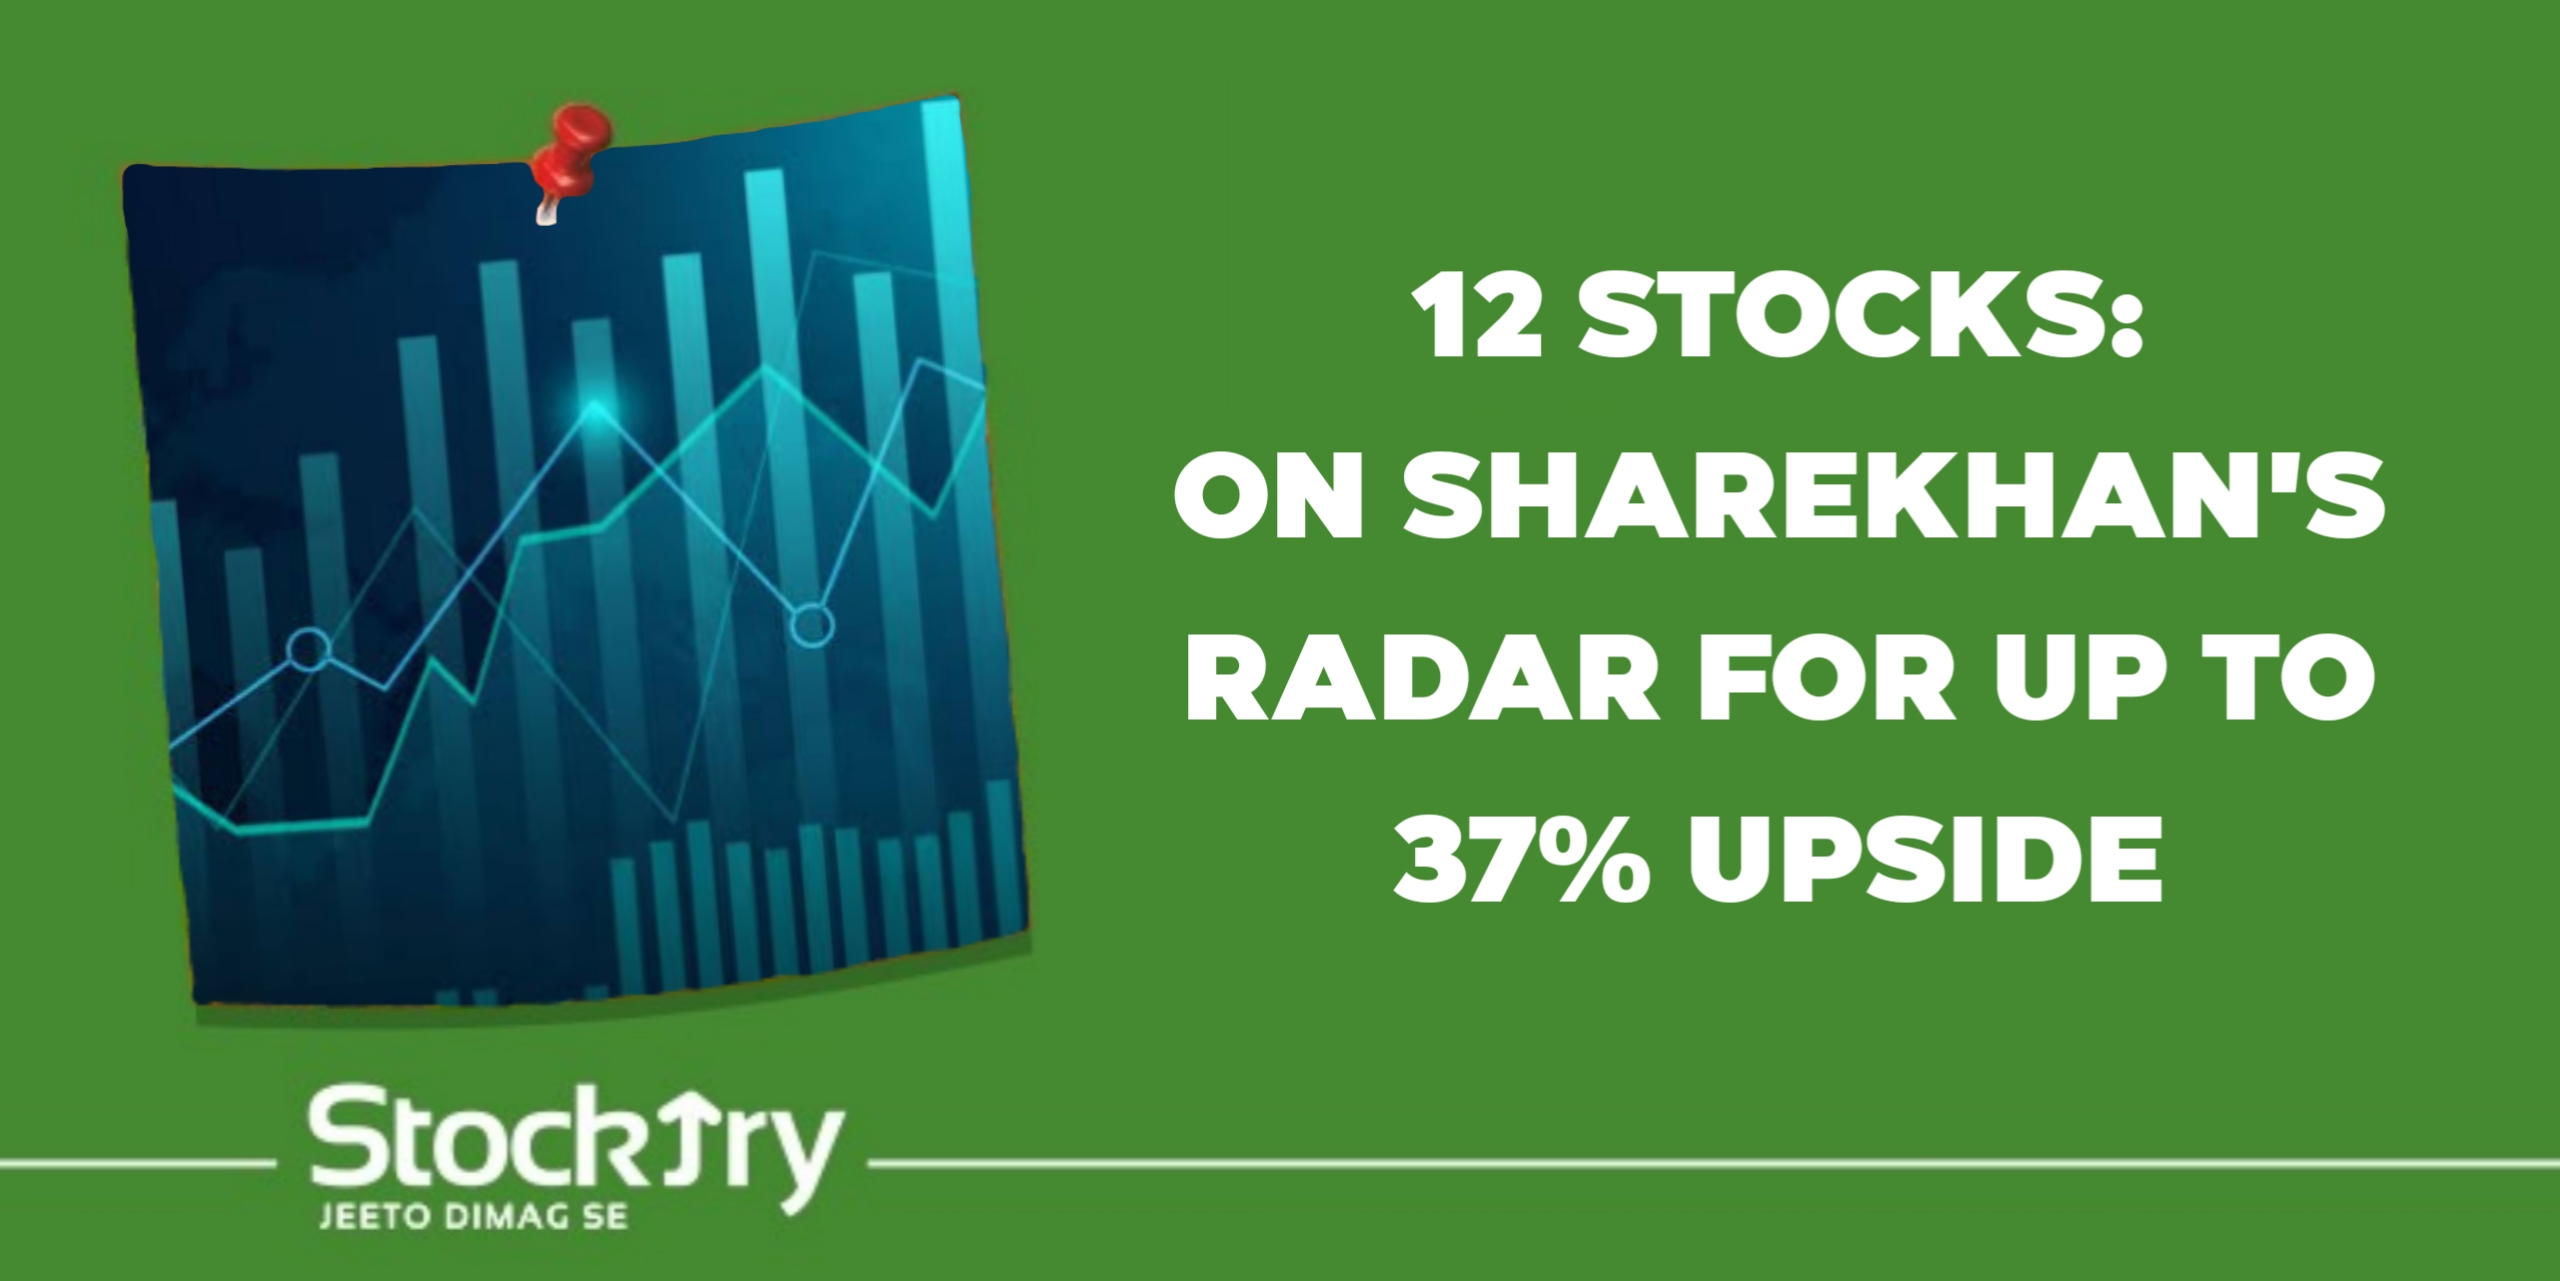 12 stocks: On Sharekhan's Radar for up to 37% Upside